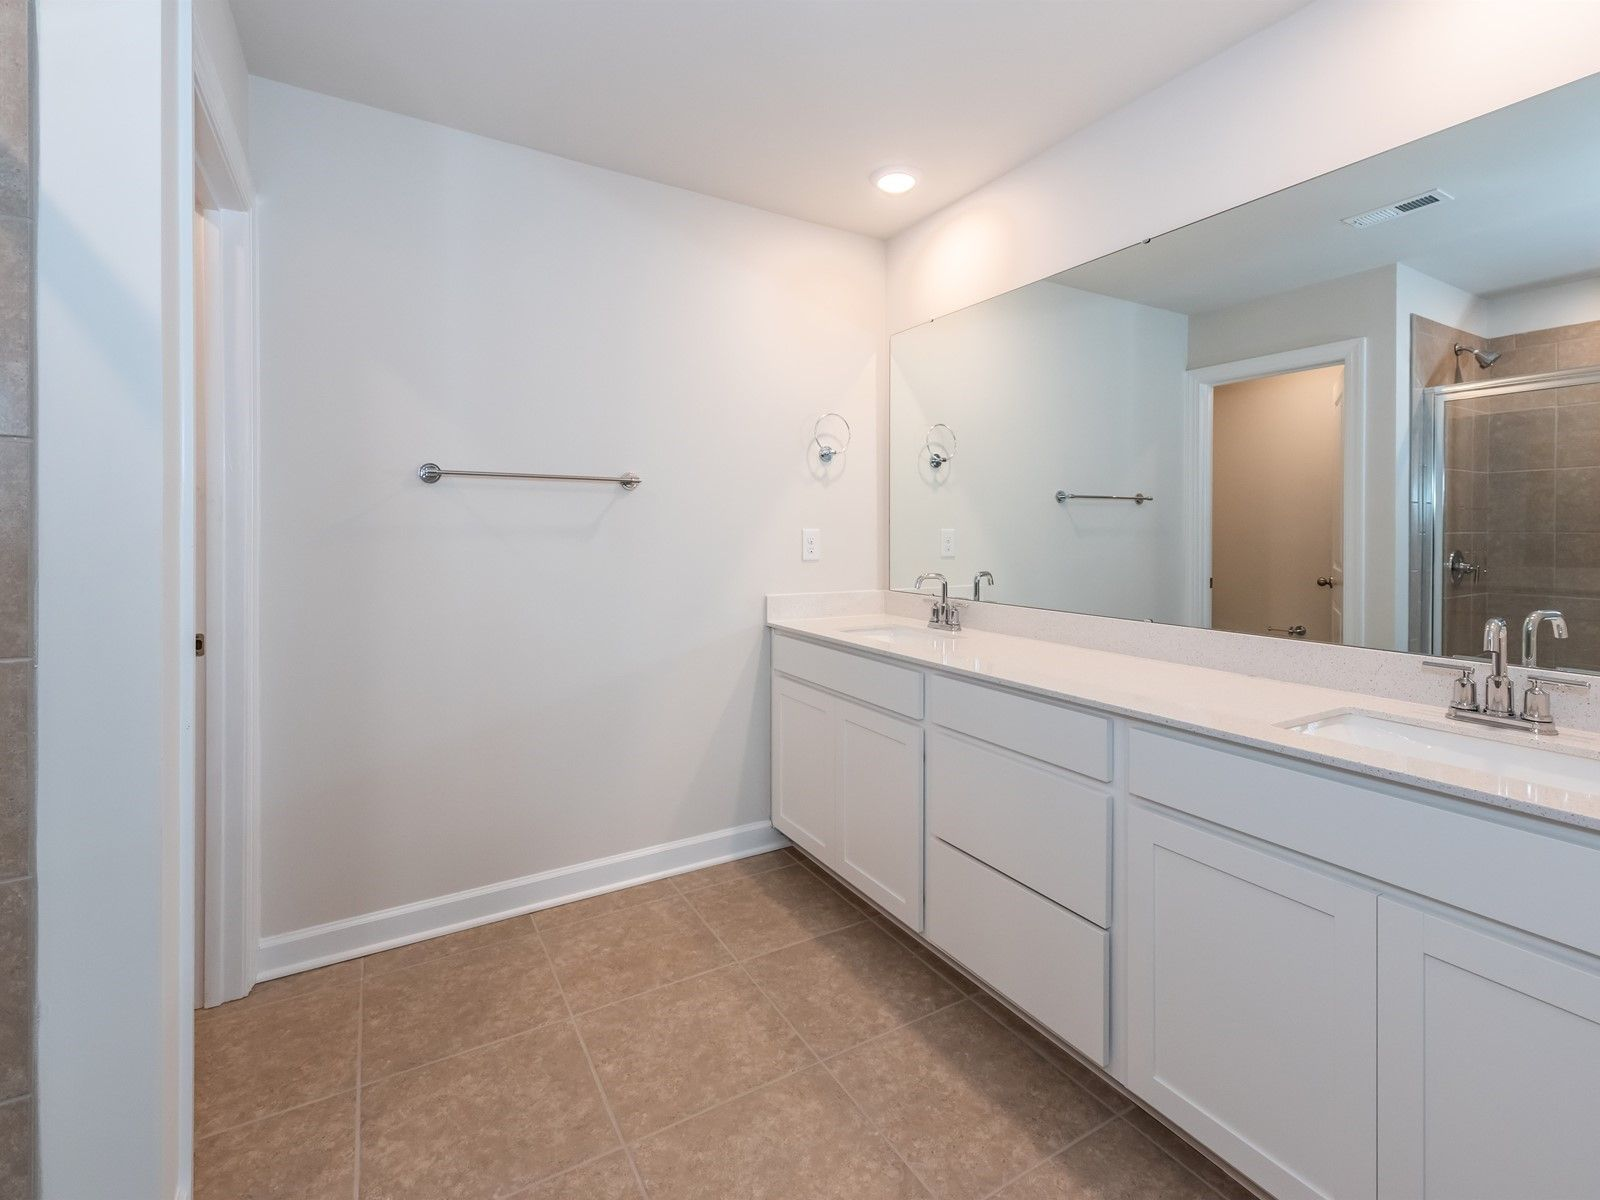 Bathroom featured in the Calhoun II By Meritage Homes in Charlotte, NC